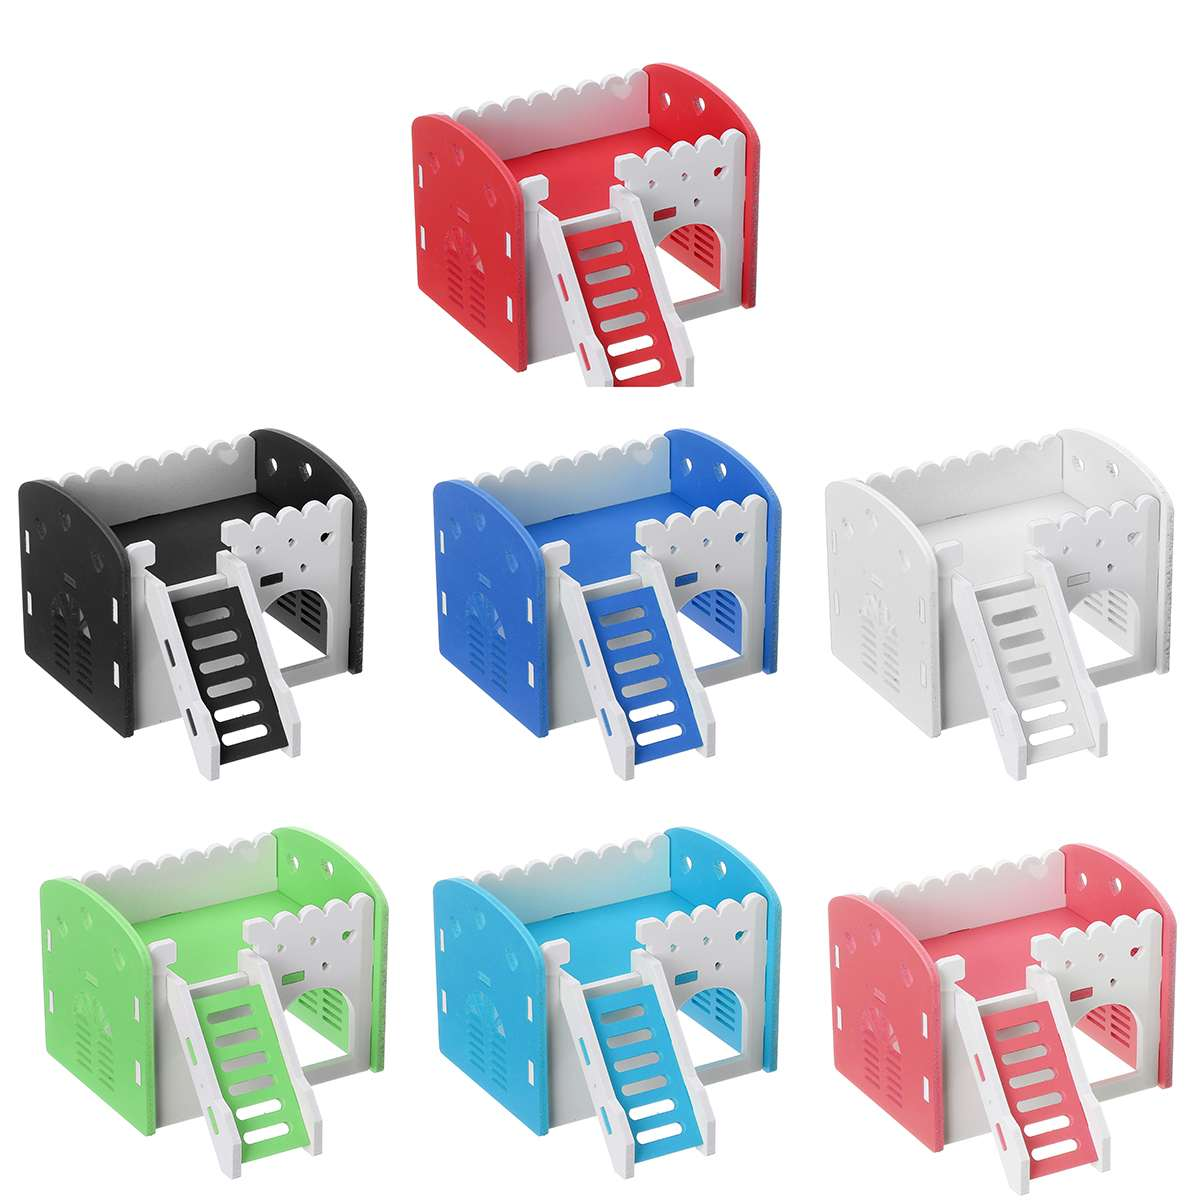 7 Colors Wooden Hamster House Double Layer Ladder Loft Small Animal Pet Mice Cage Castle Hamster Climb Toys House Pet Supplies